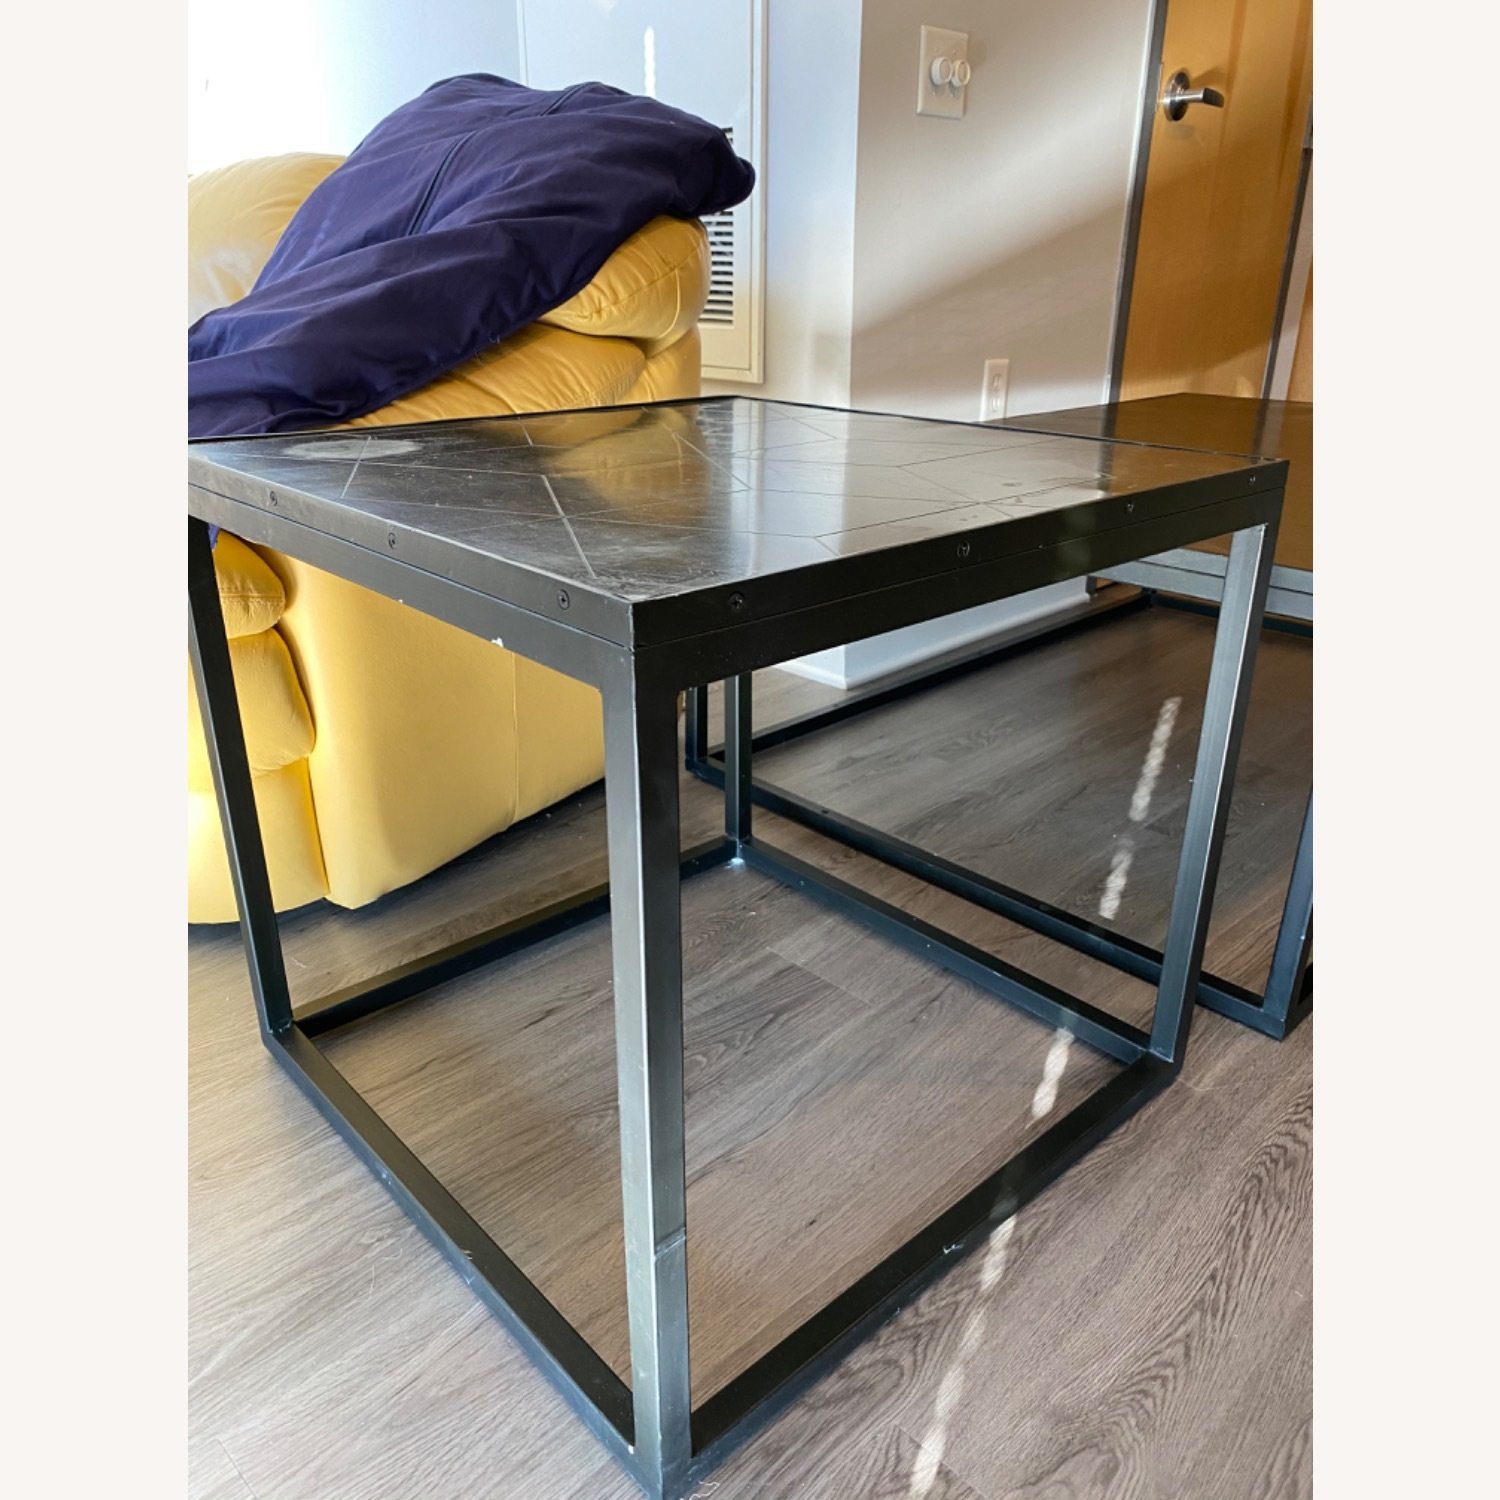 Restoration Hardware Metal Parquet Side Table - image-4